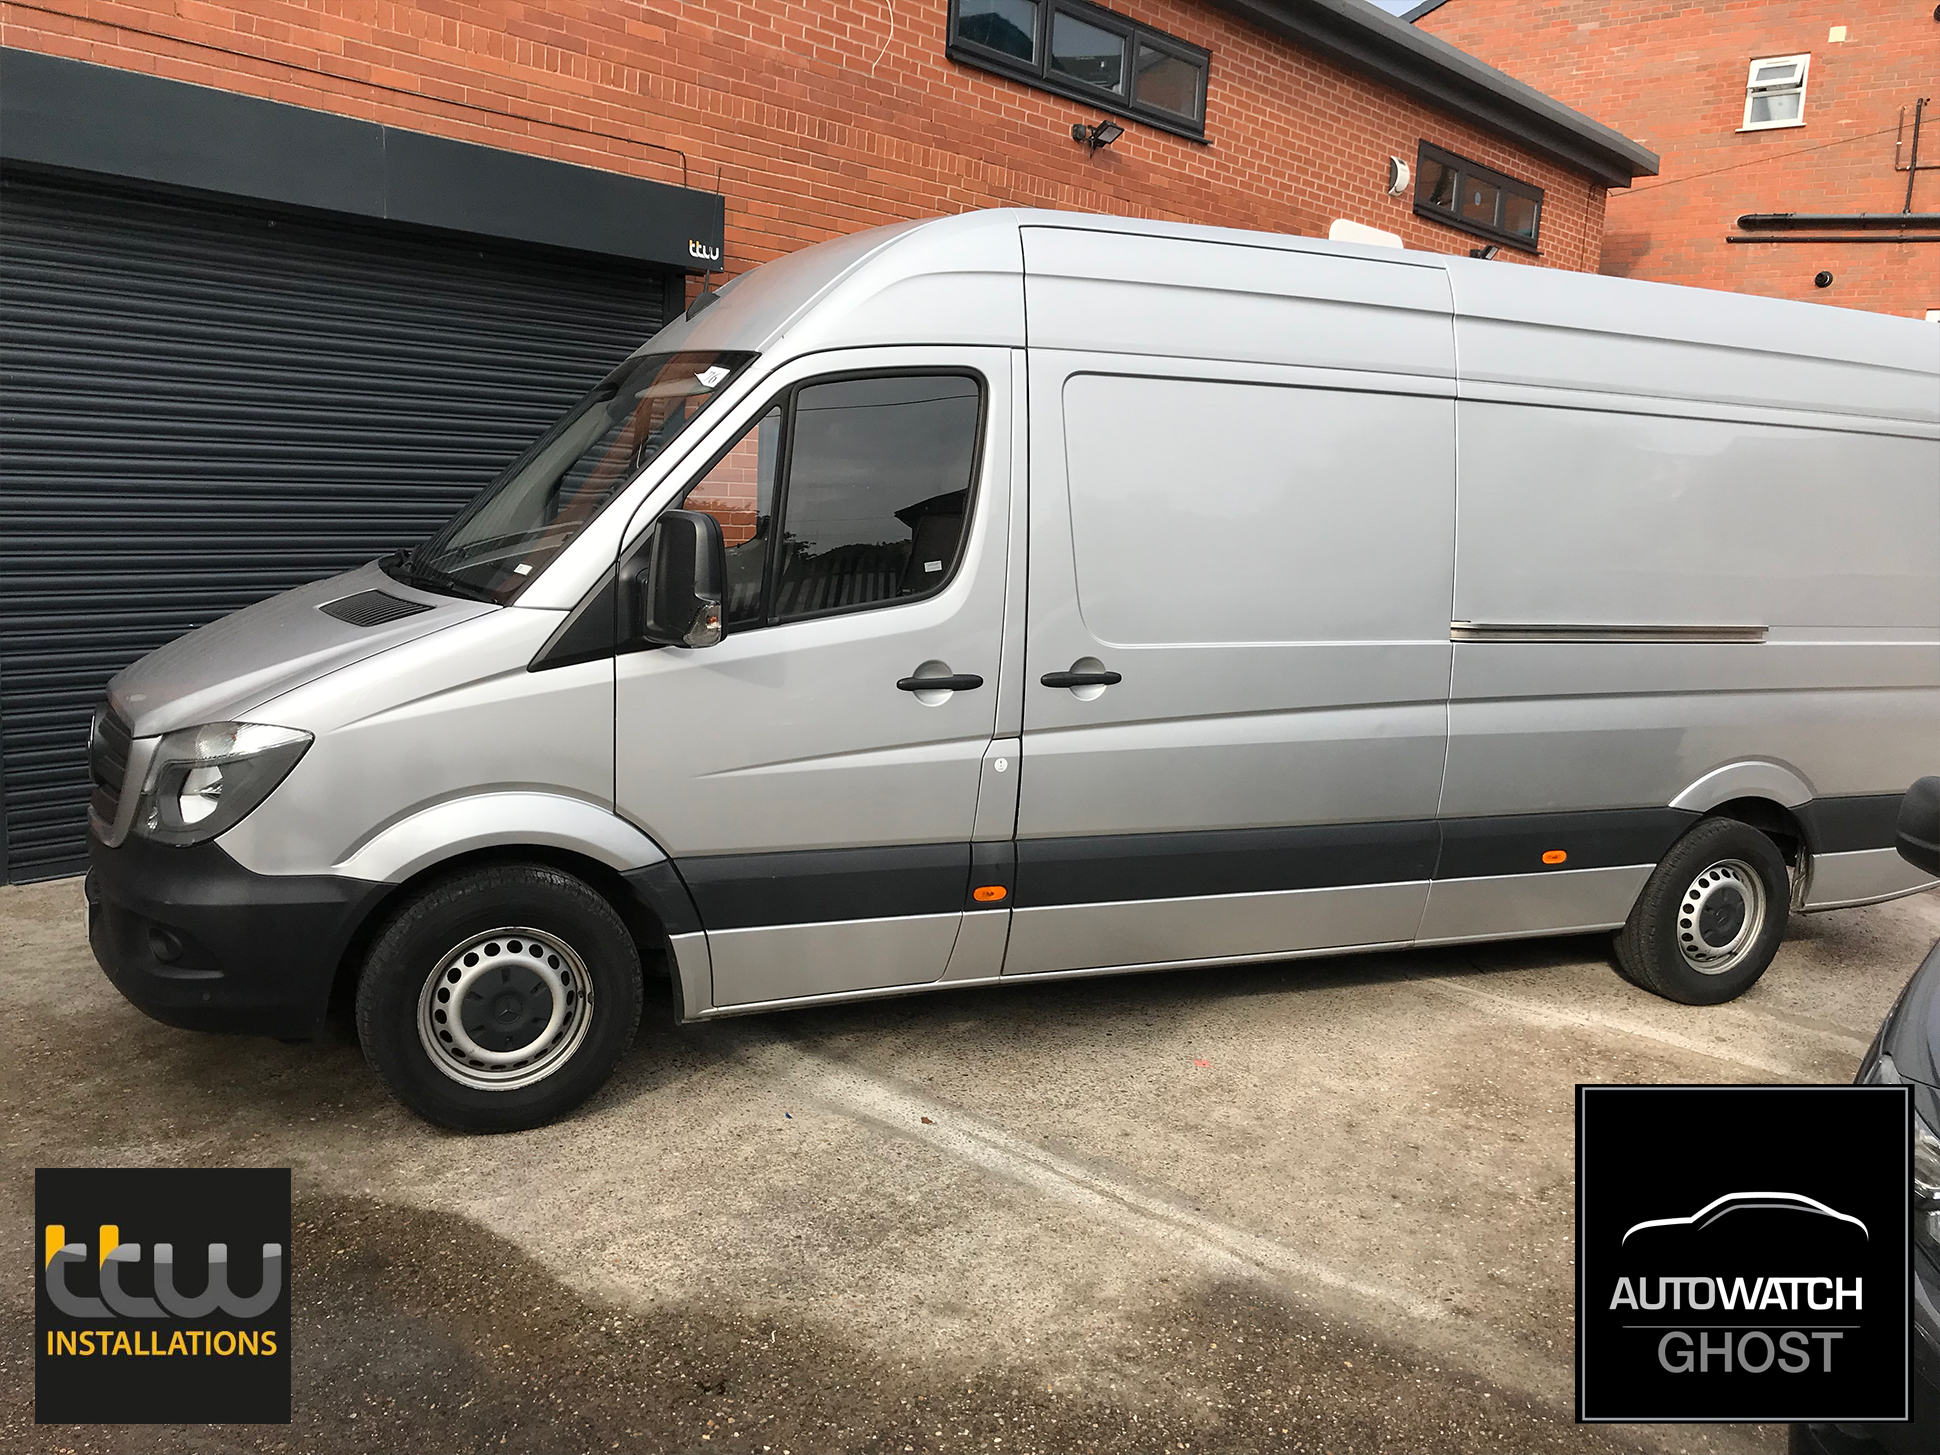 mercedes sprinter van Autowatch Ghost 2 protected By TTW Installations